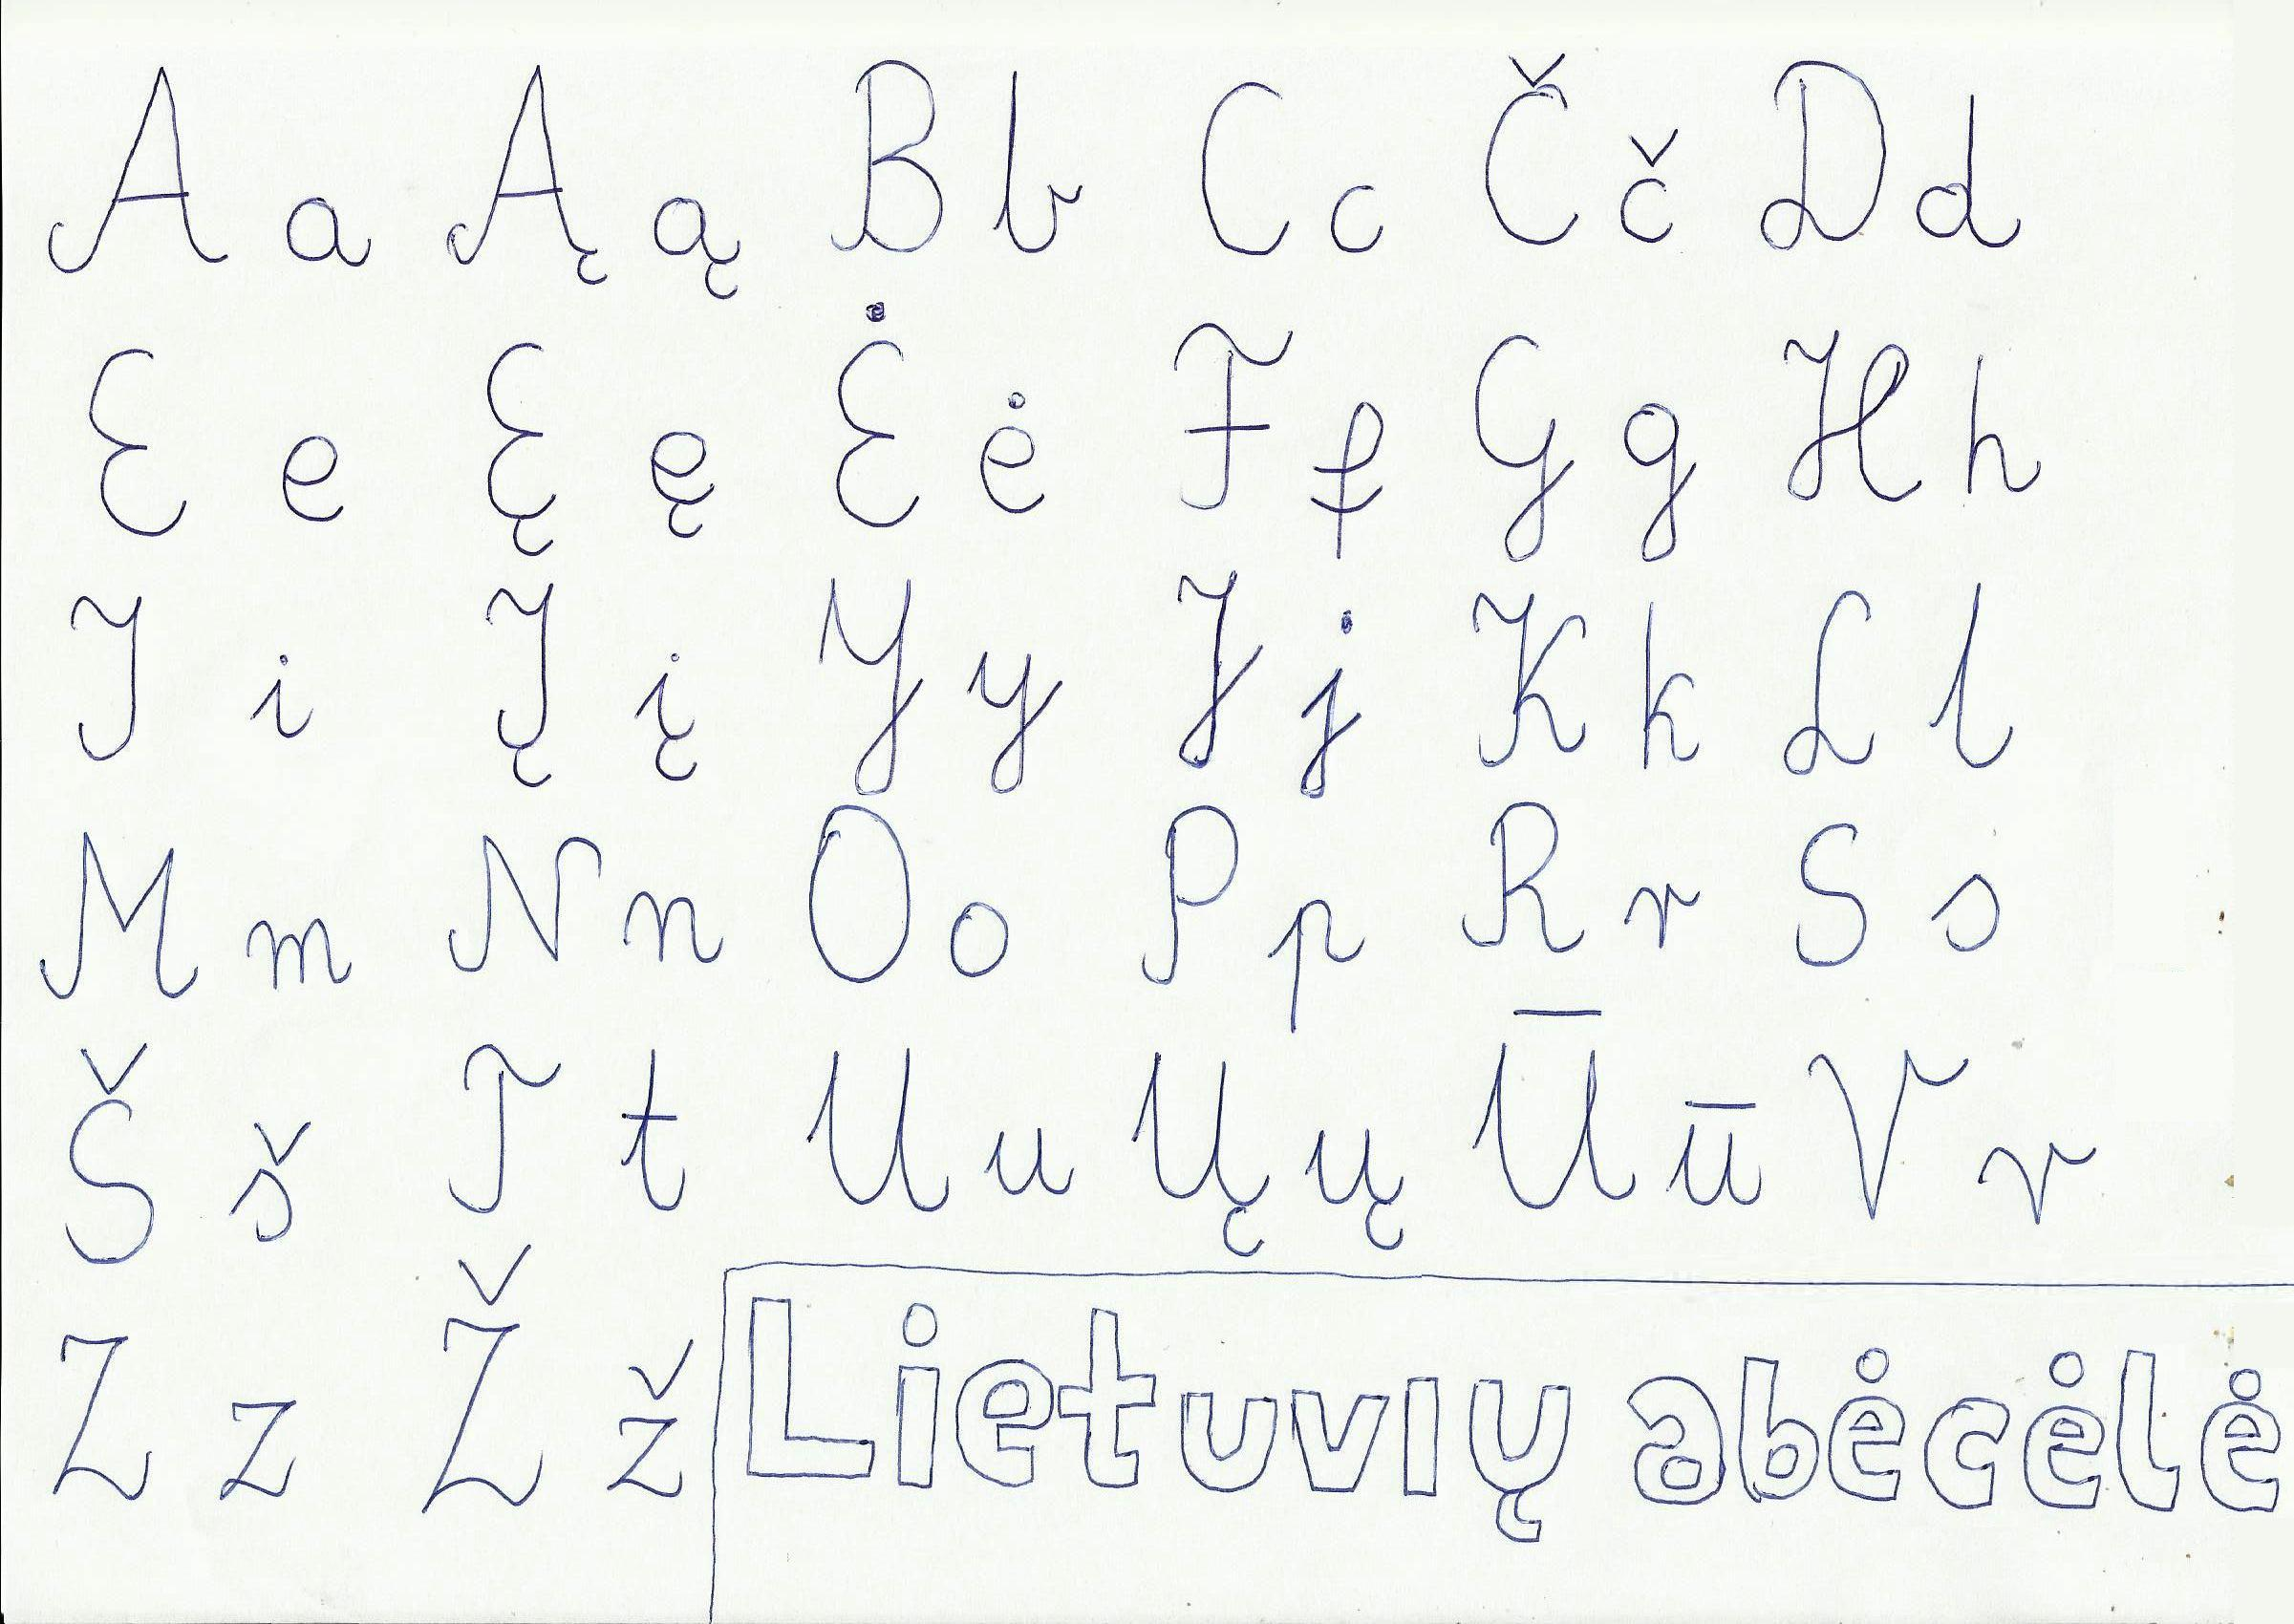 old english handwriting alphabet